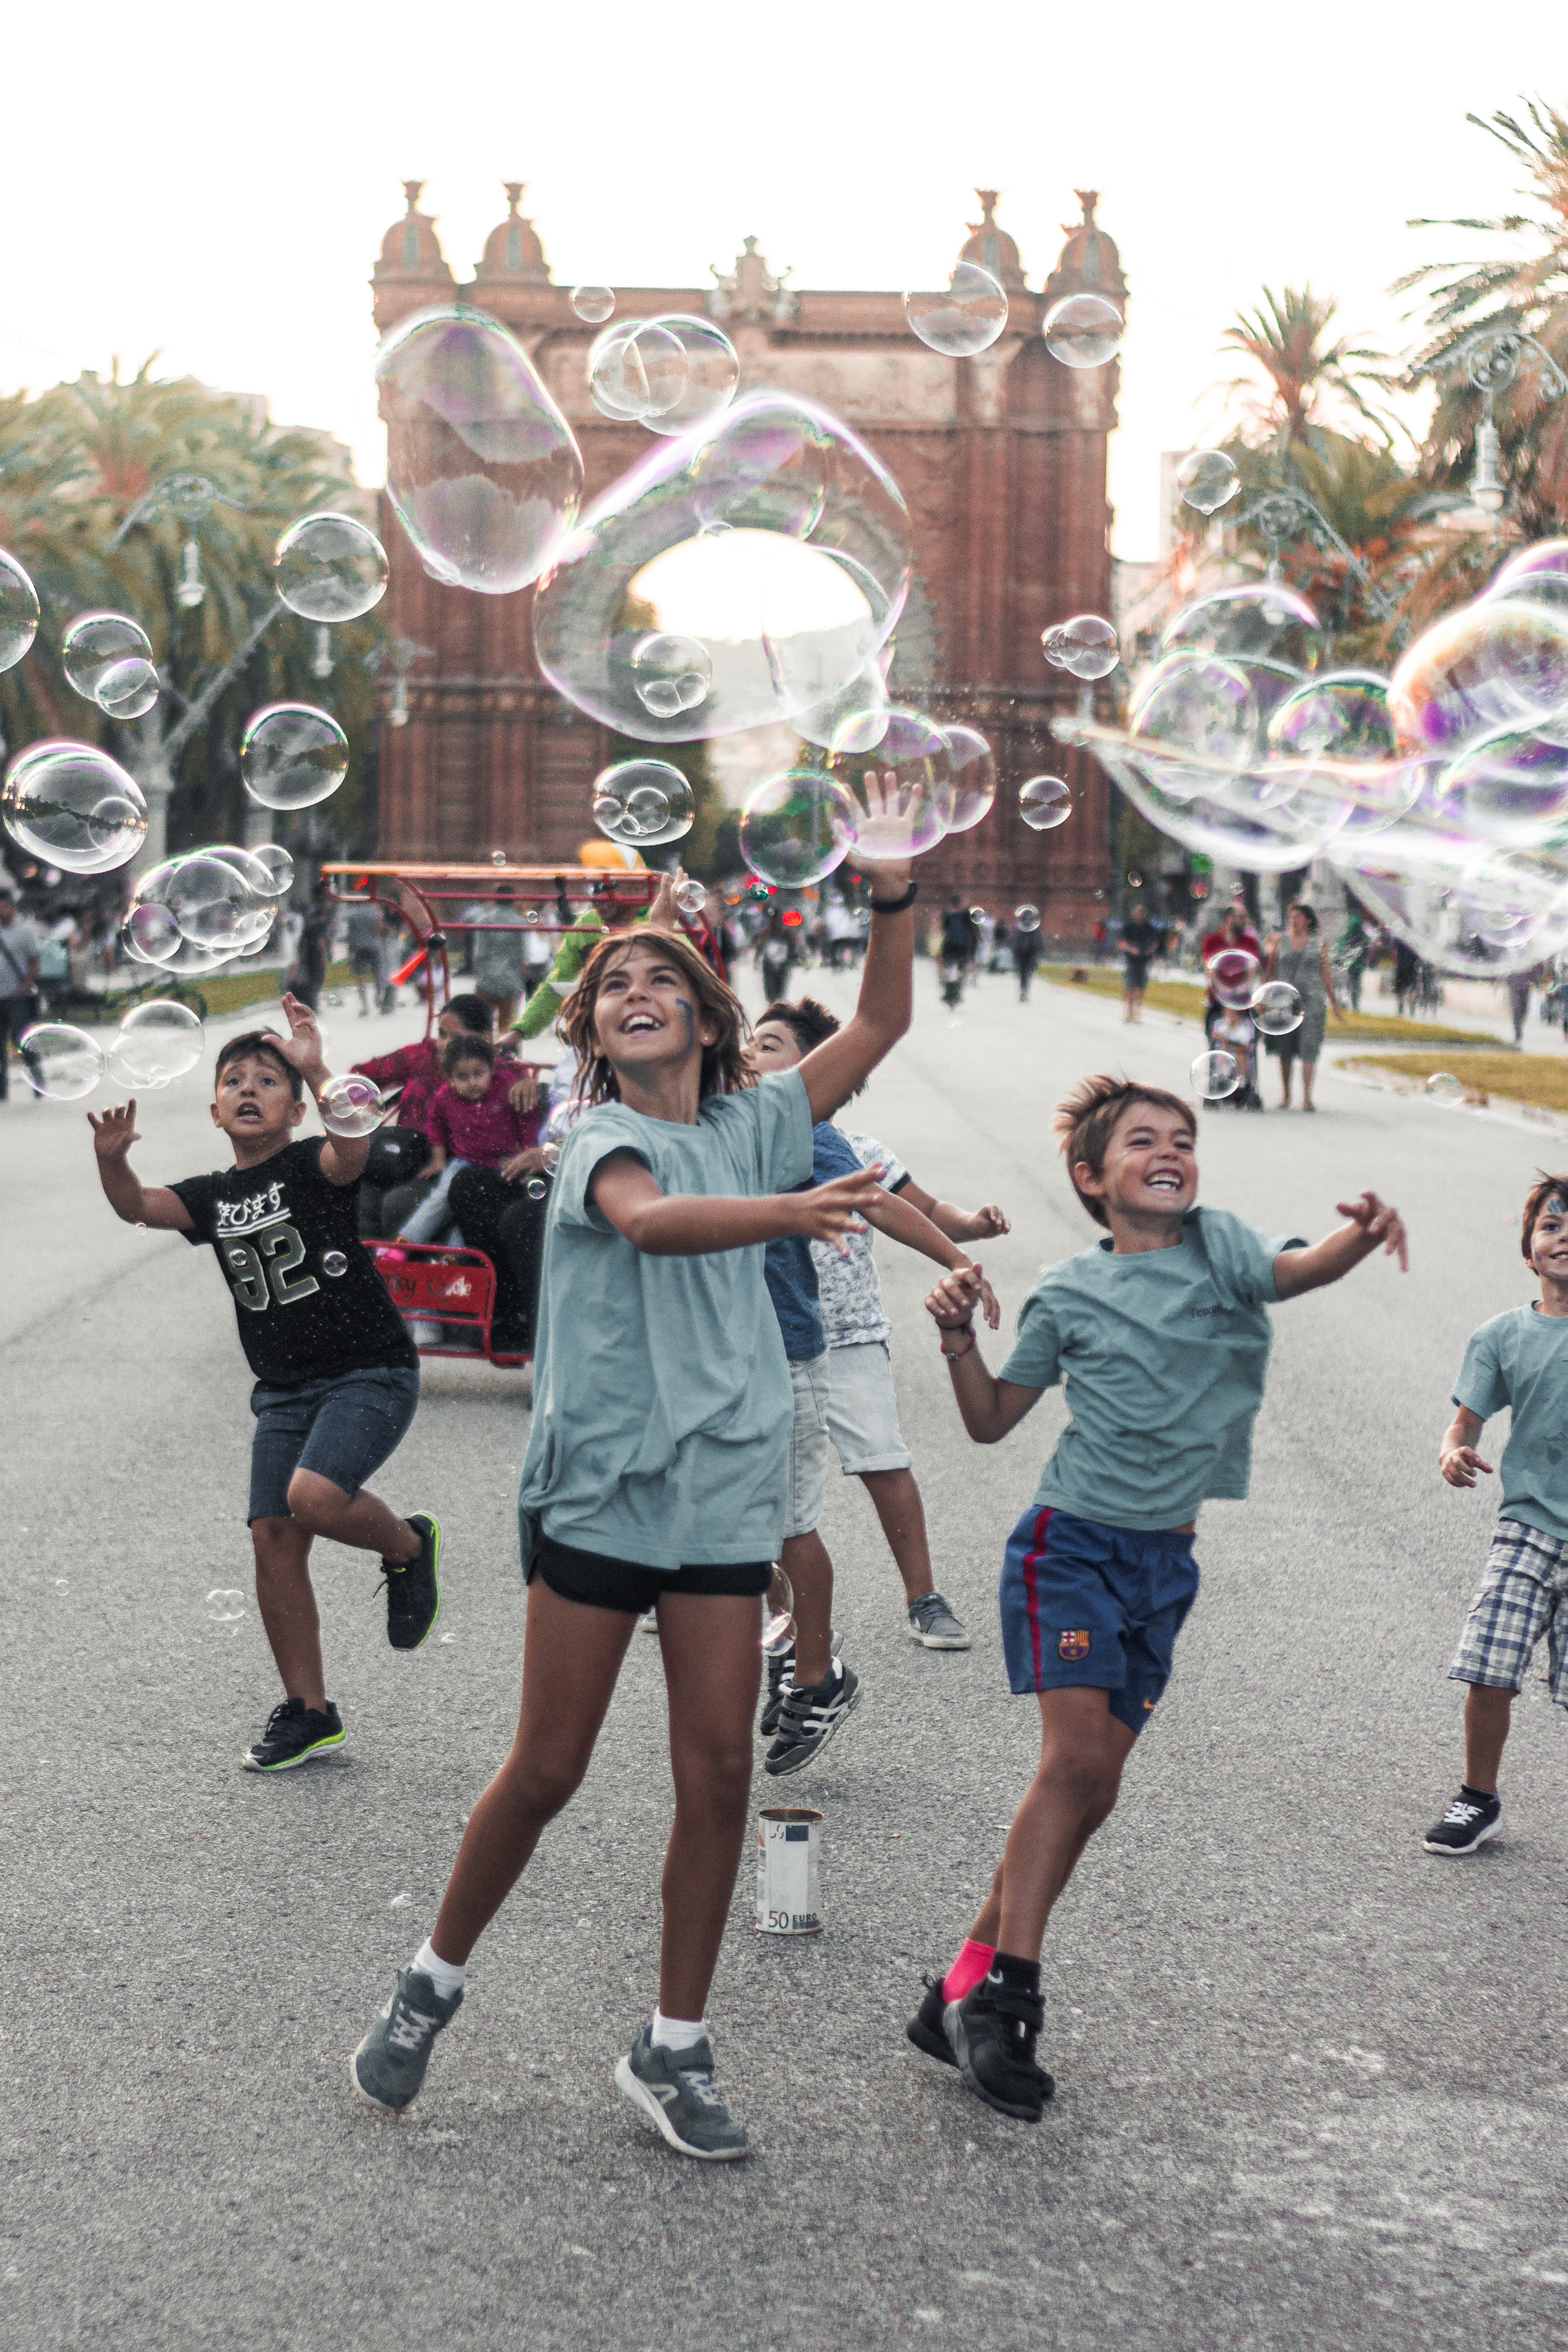 children-playing-bubbles-2914265